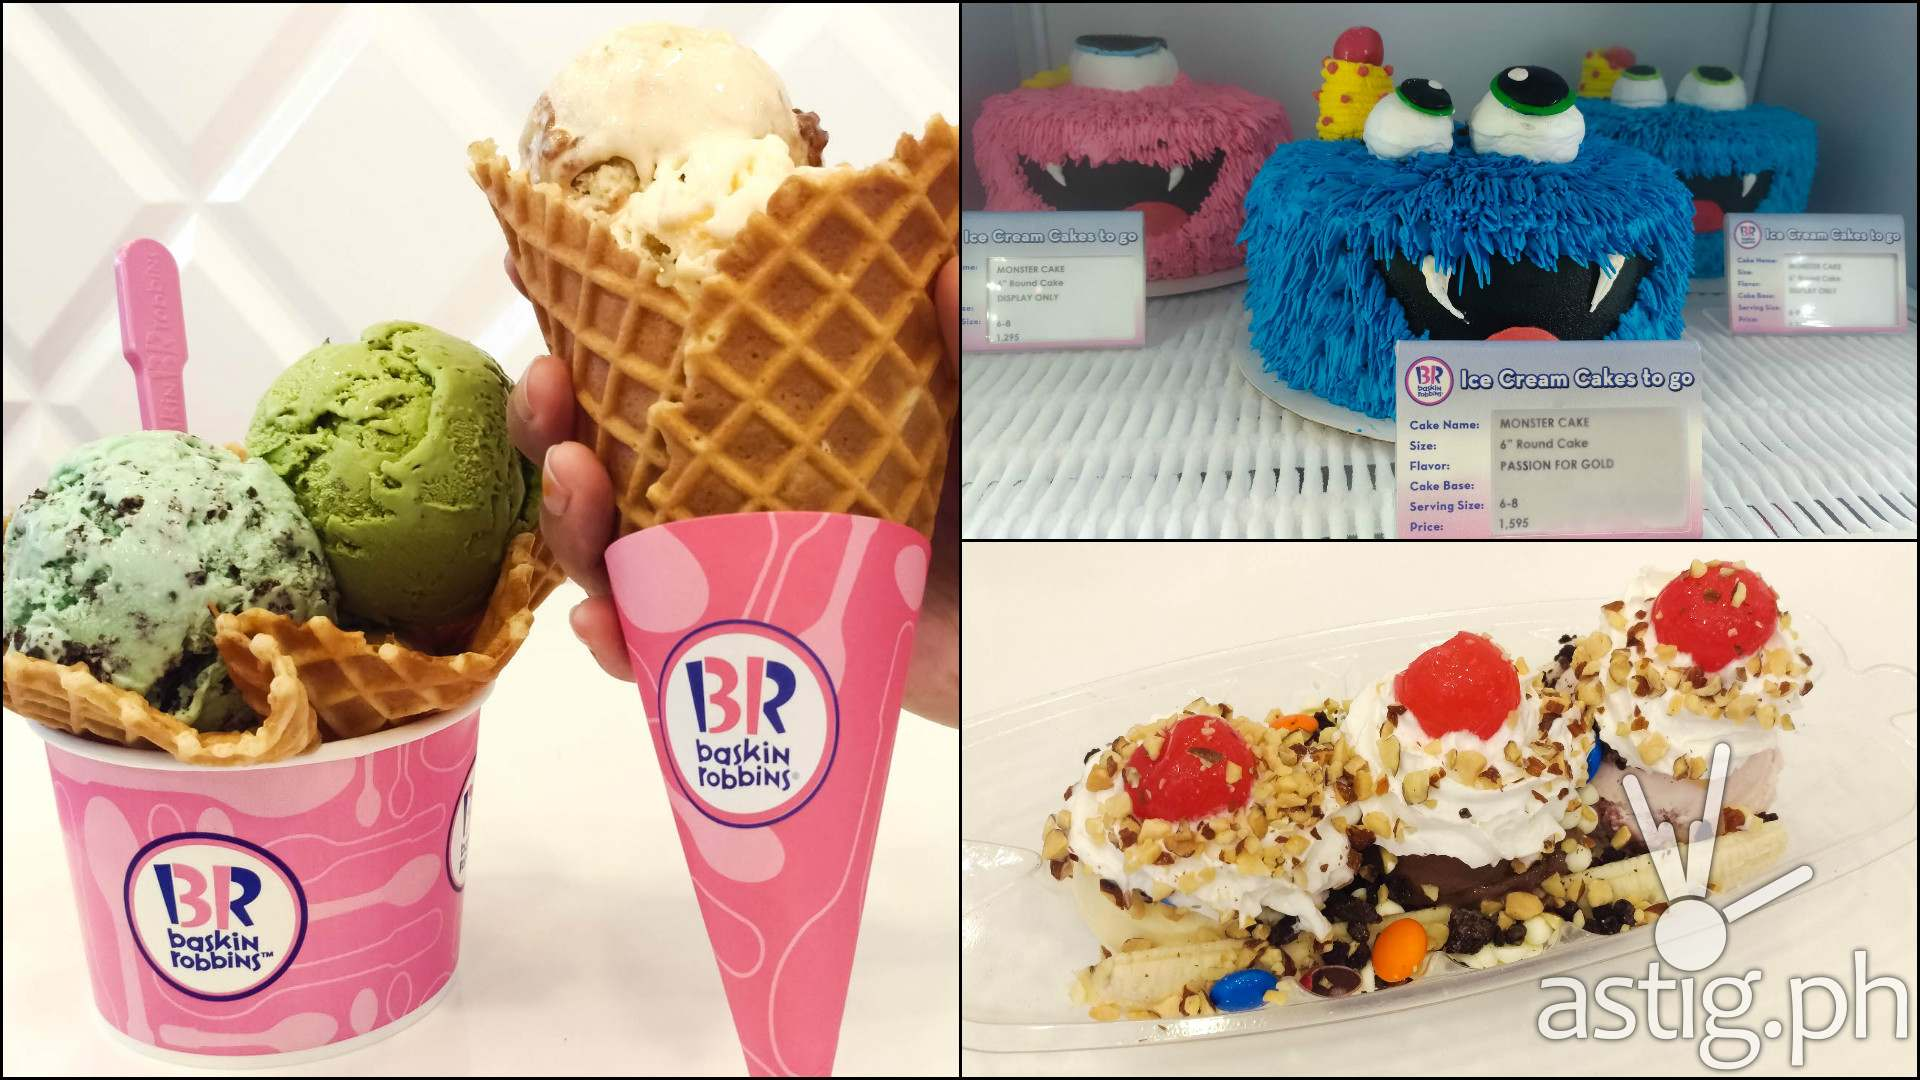 Baskin Robbins BGC opening 3 reasons